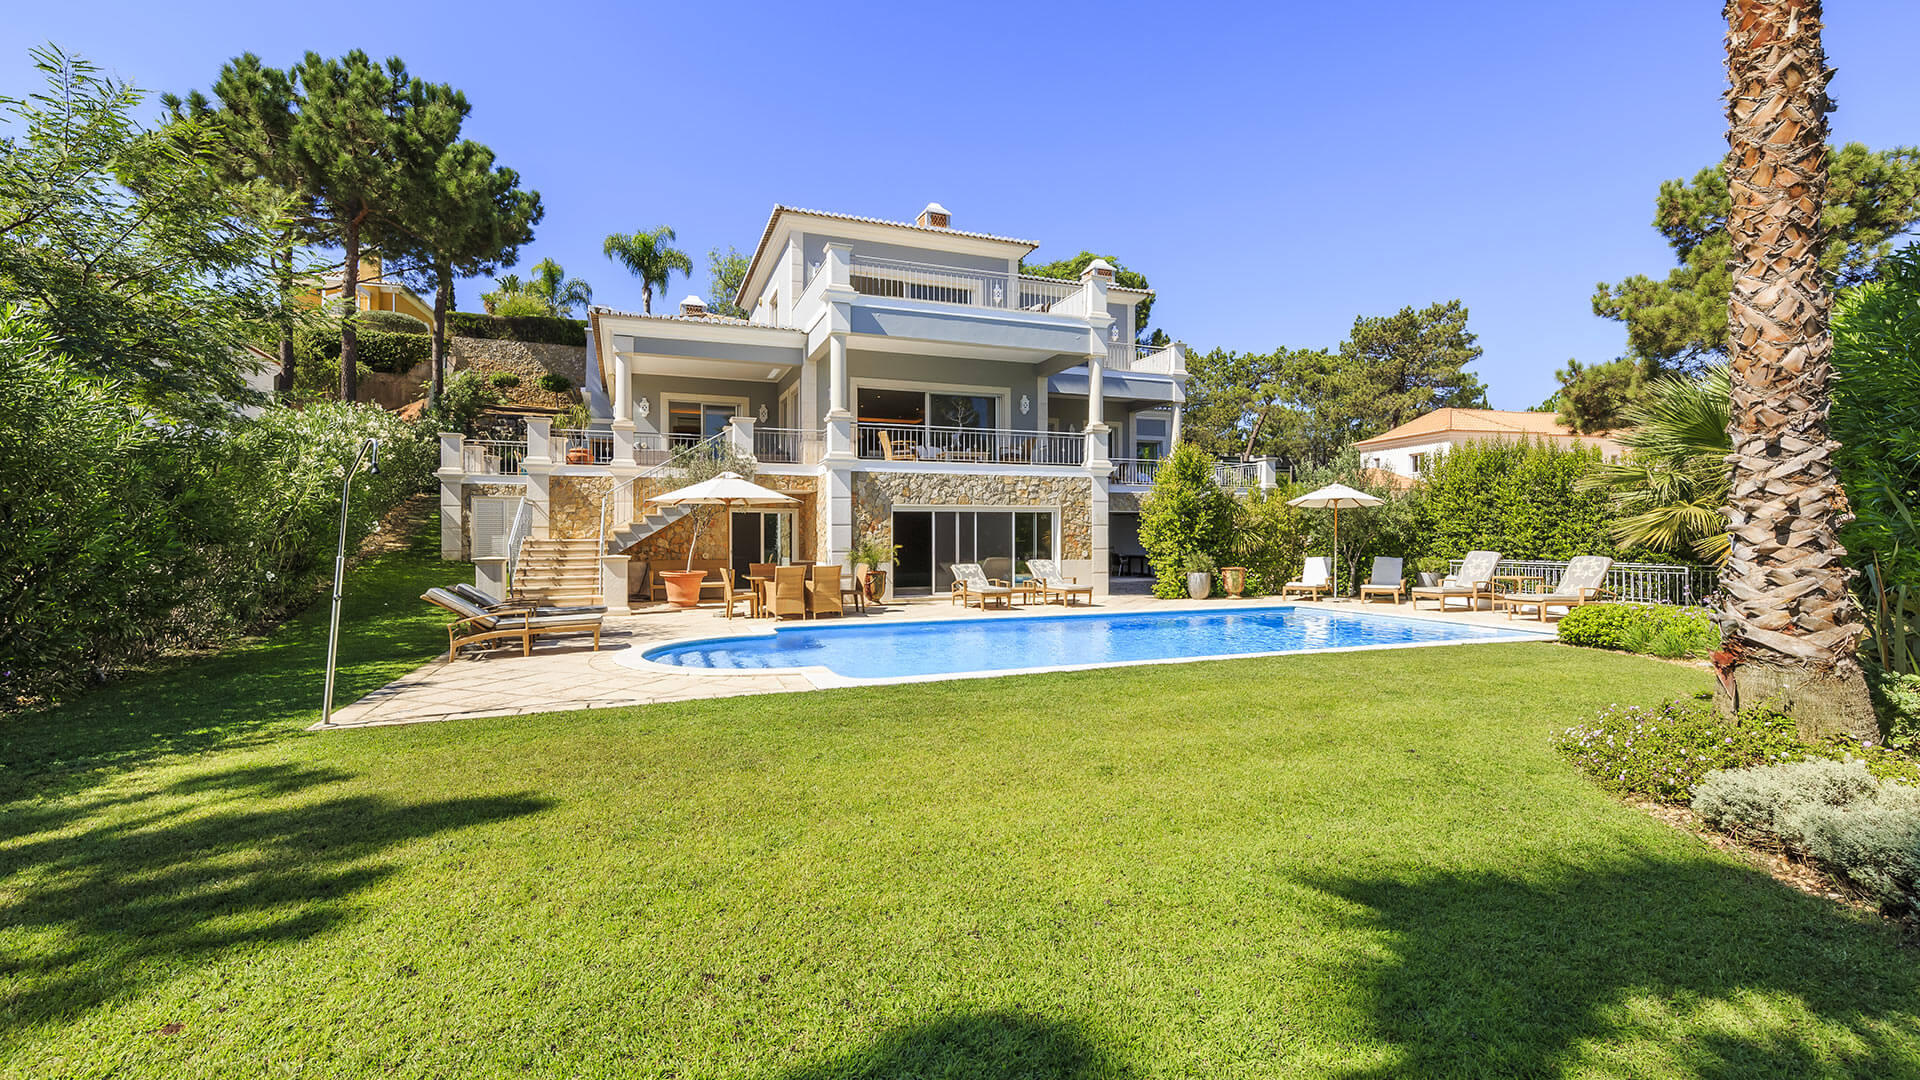 Villa Villa Cyclamen, Rental in Algarve